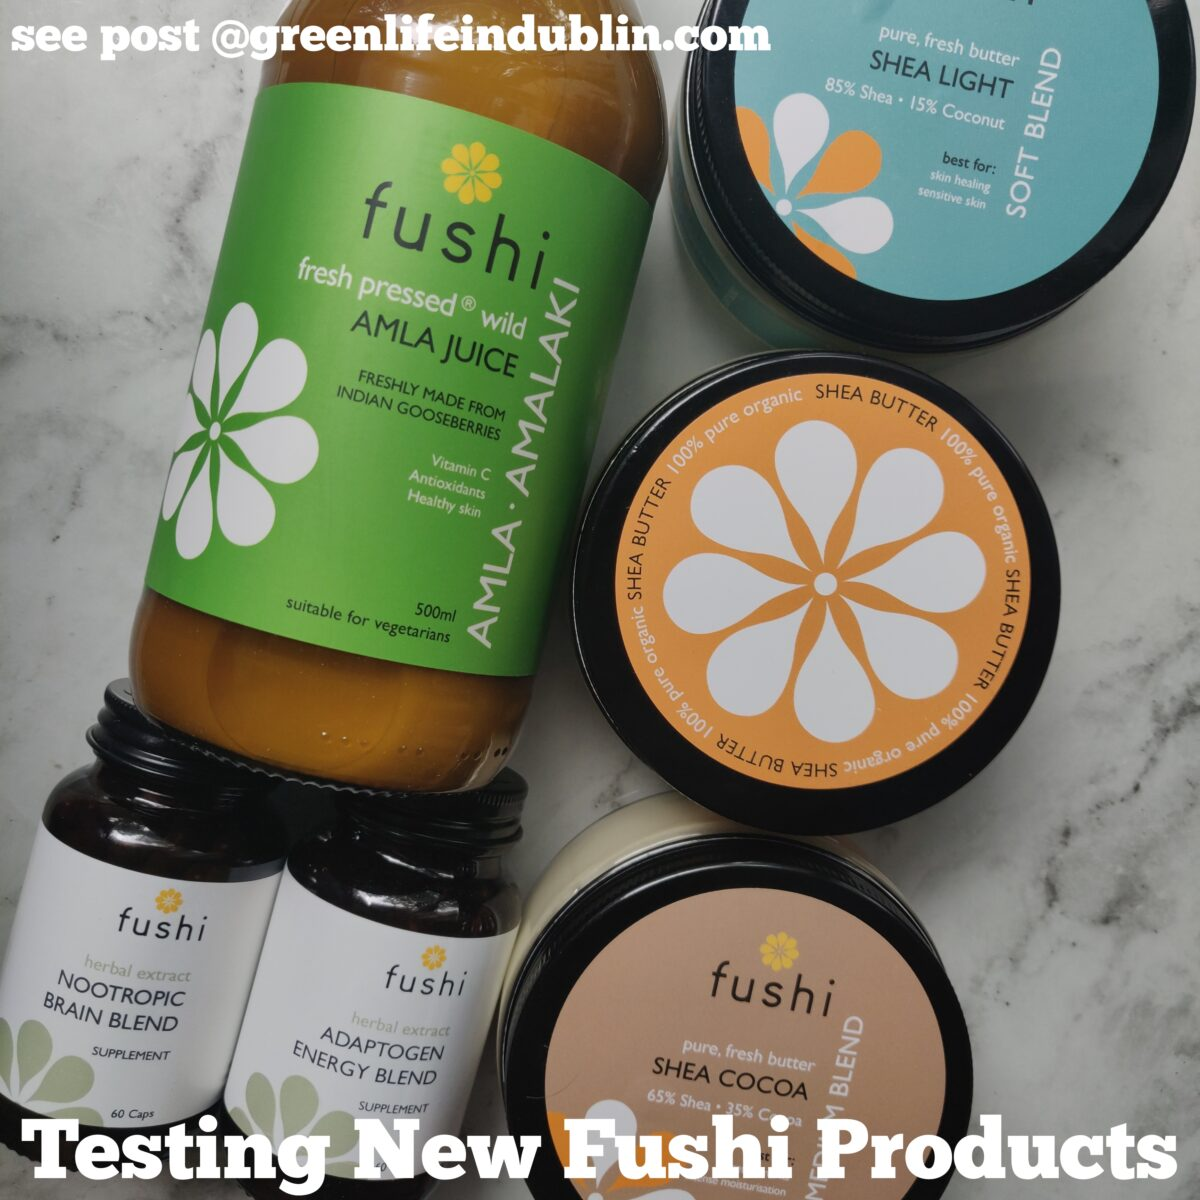 Testing new Fushi products - shea butters, amla juice & supplements